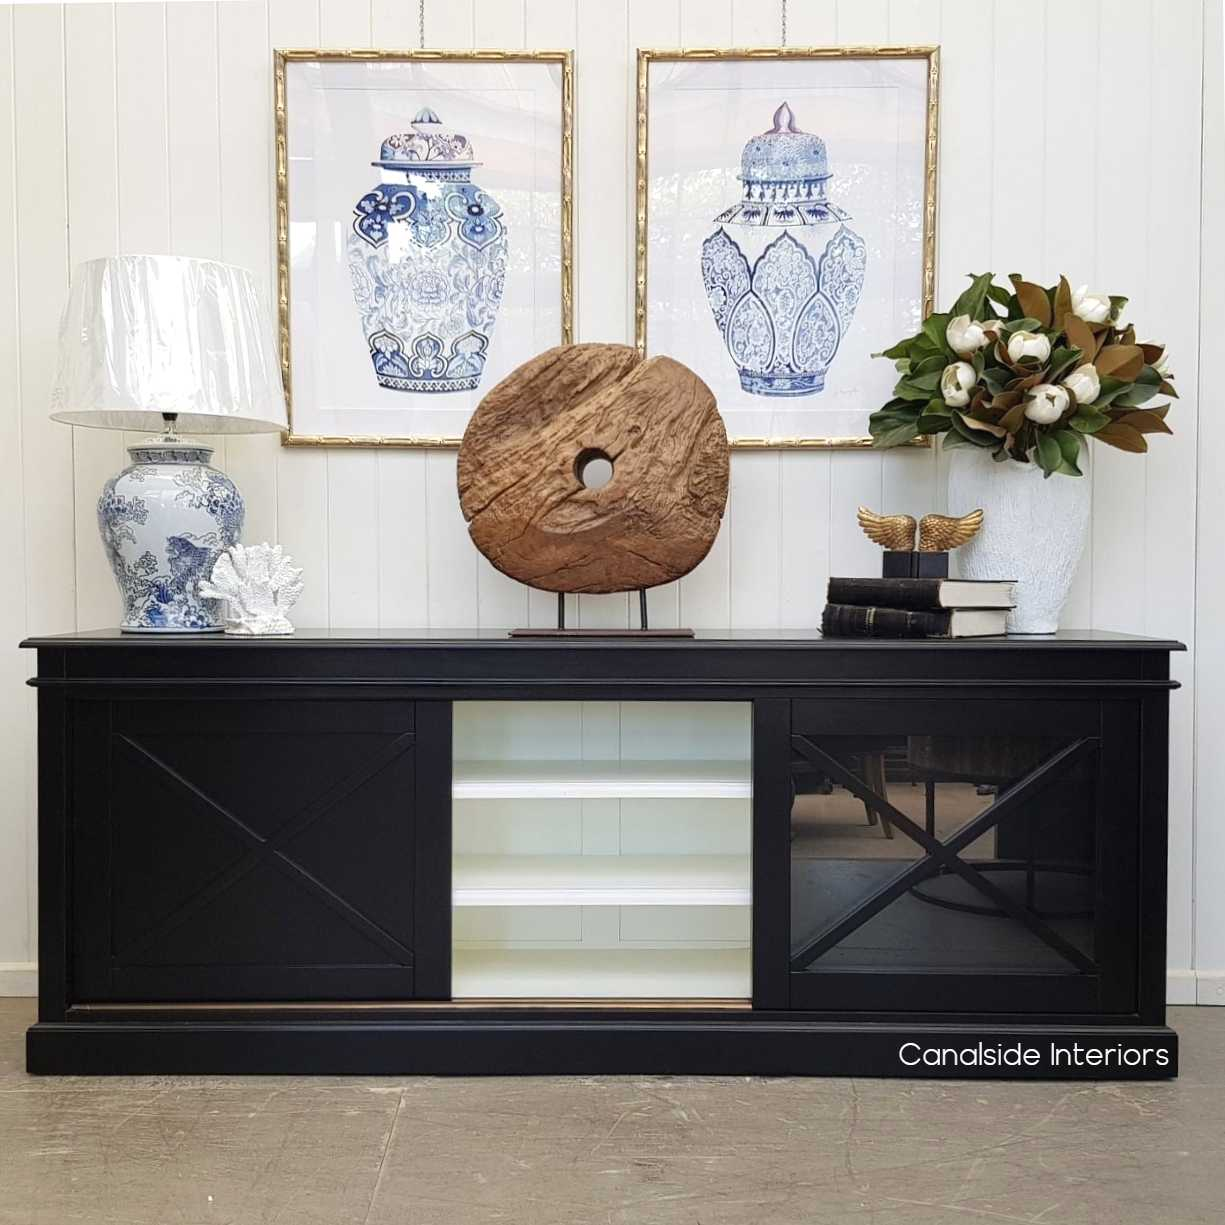 Belmont Hamptons Sliding Door TV Sideboard Black with White Interior  HAMPTONS Style, PLANTATION Style, LIVING Room, LIVING TV Media & Storage, TABLES Sideboards & Buffets, STORAGE, STORAGE Sideboards & Buffets